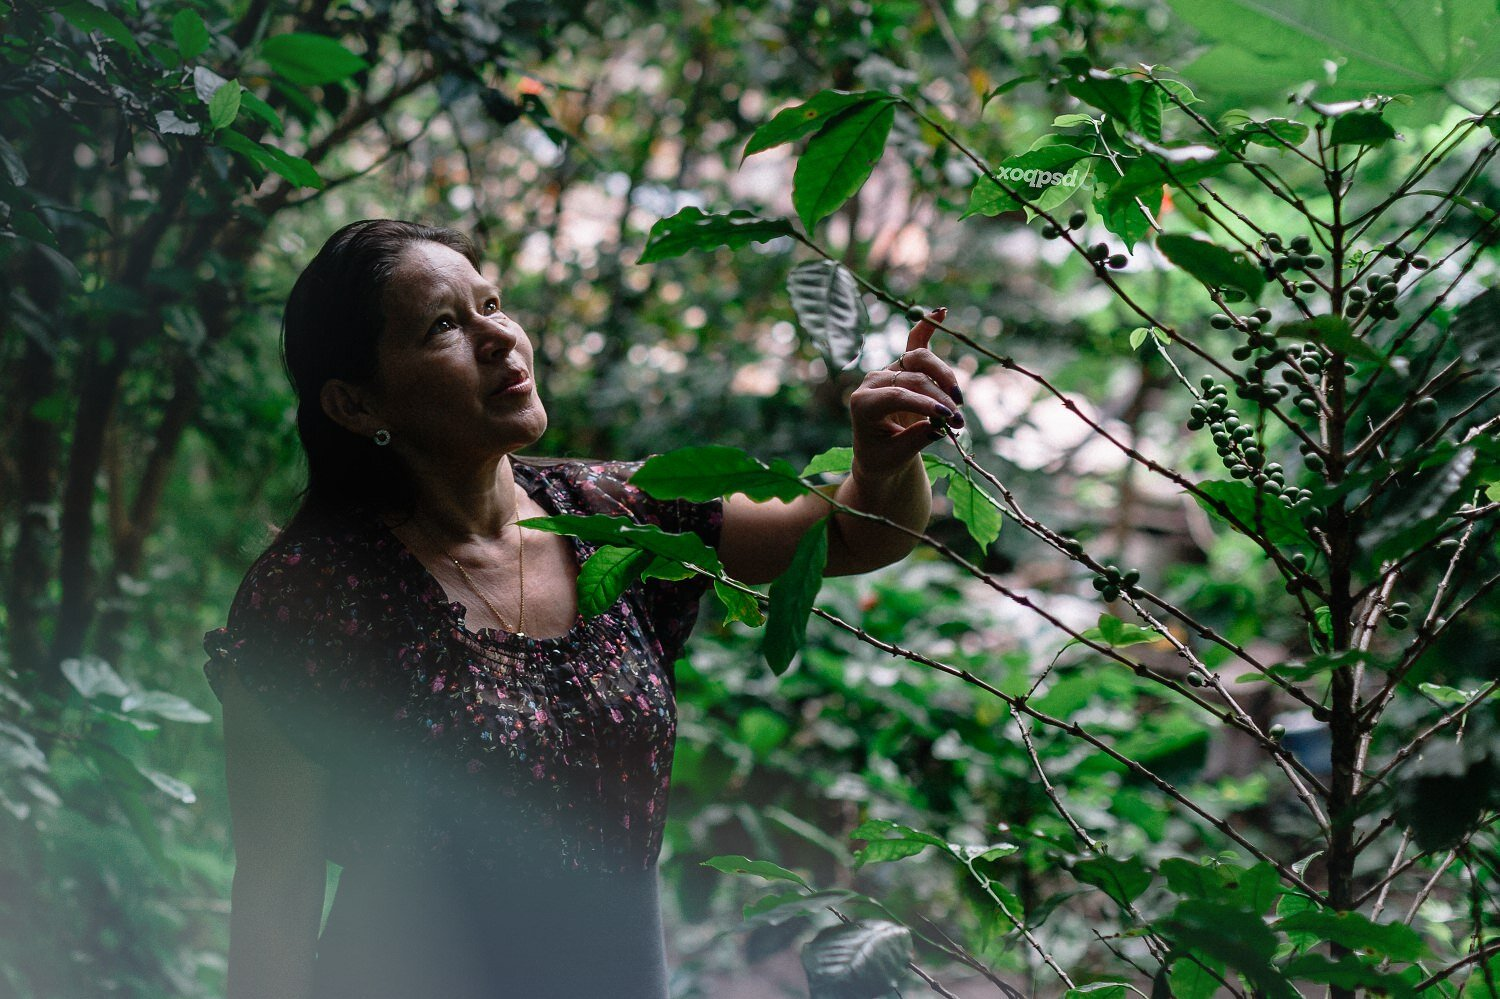 Coffee Producer reviewing Plants Photography-Exposure.jpg